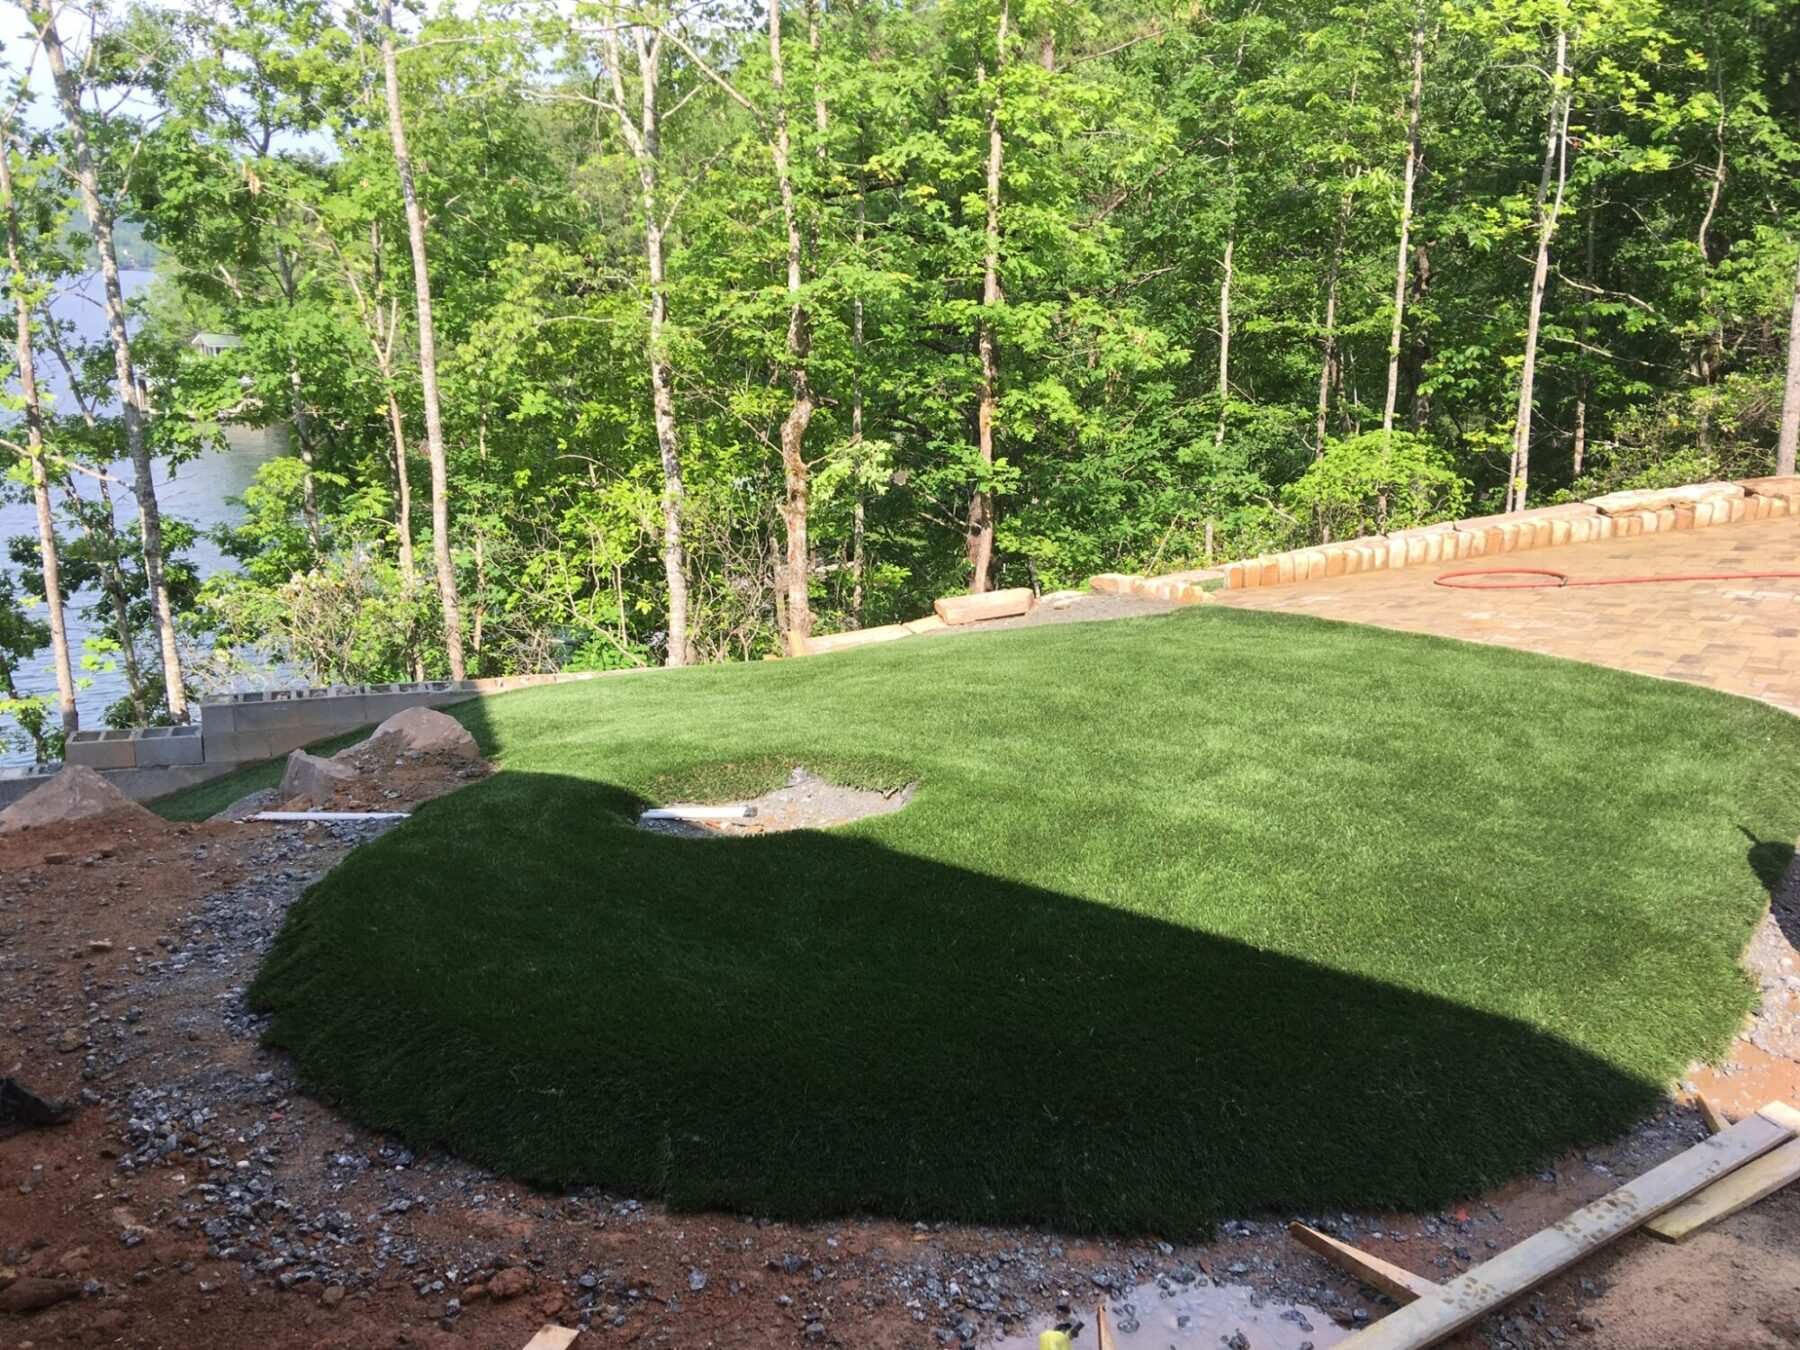 residential home with artificial grass installation